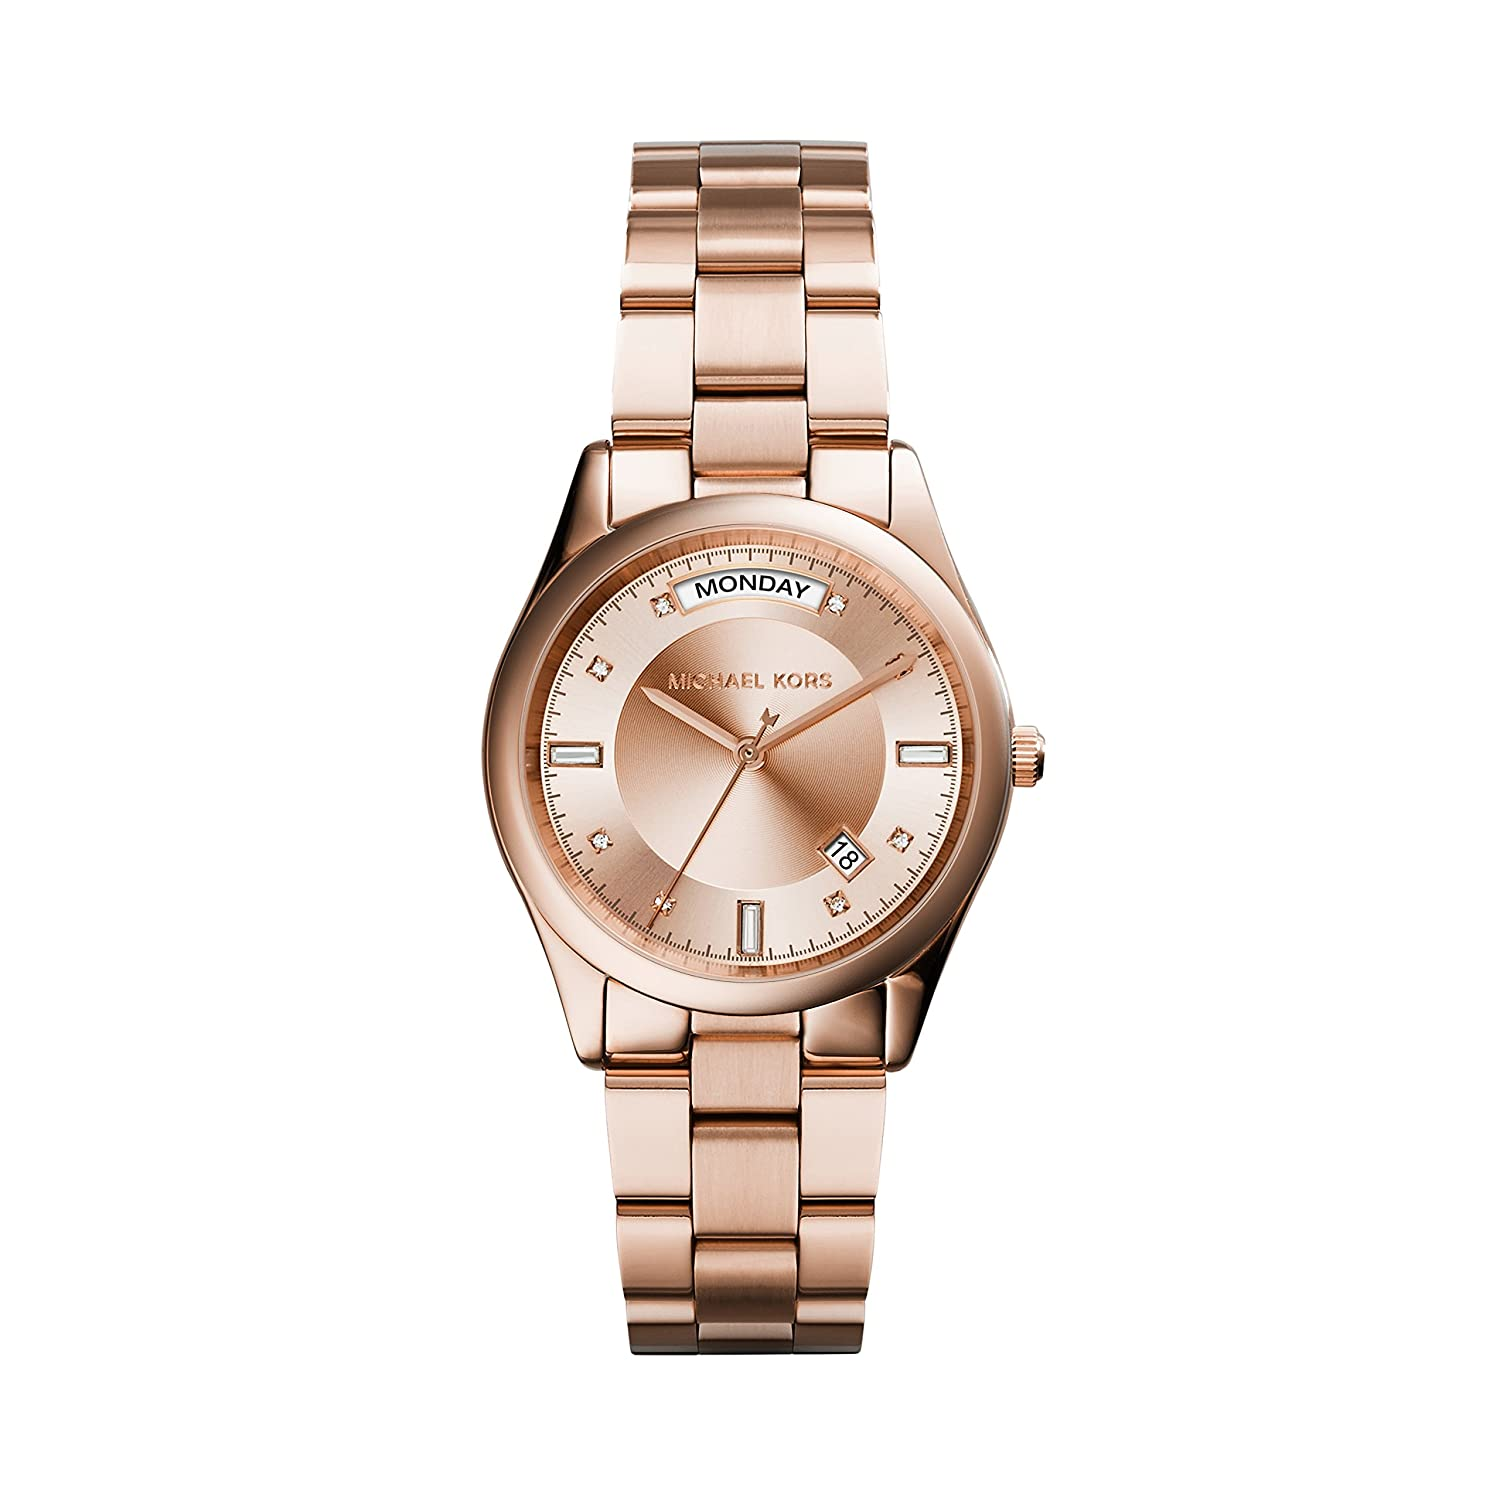 Amazon.com: Michael Kors Womens Colette Watch, Rose Gold, One Size: Michael Kors: Watches